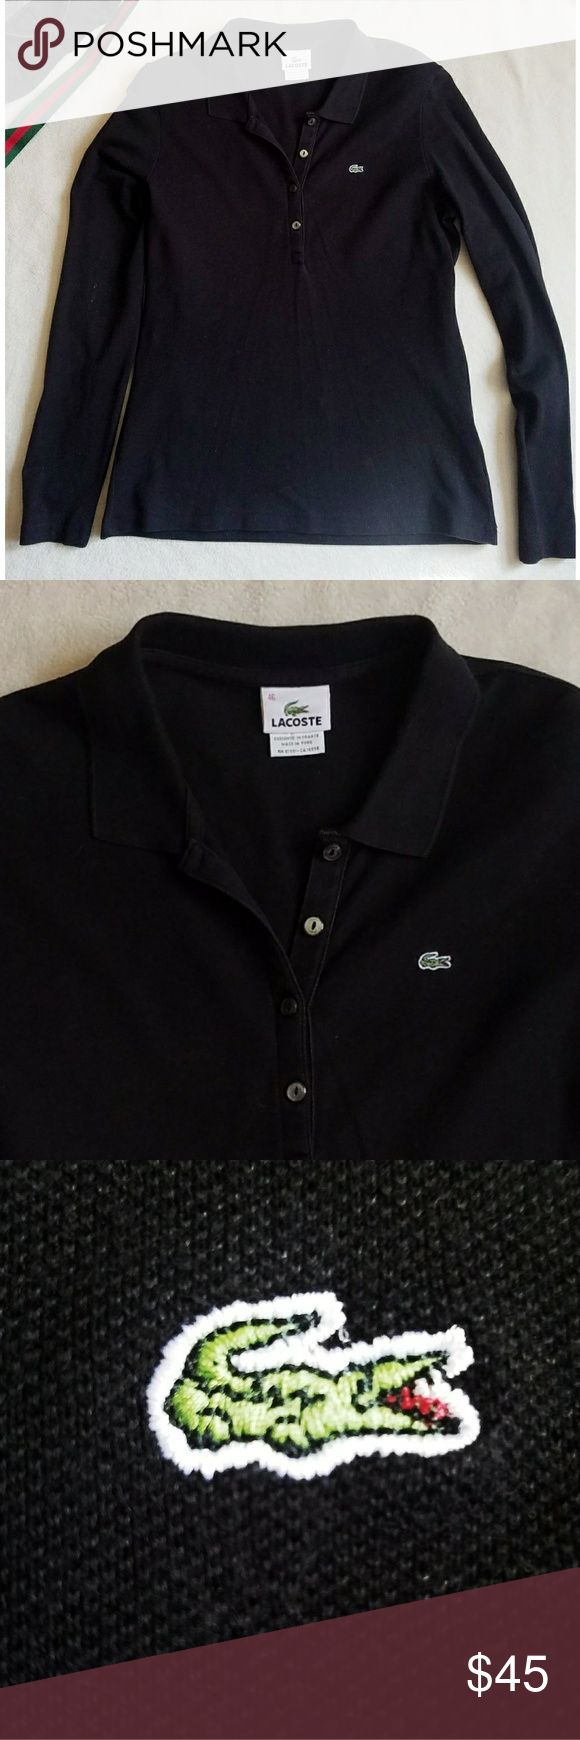 Lacoste long sleeve black polo Lacoste long sleeve black polo, Tag states size 46 which is equivalent to a XXL, Measurements are APPROXIMATE in inches: Bust 19 flat, length 27. *My items are NOT from a smoke free home* Lacoste Tops